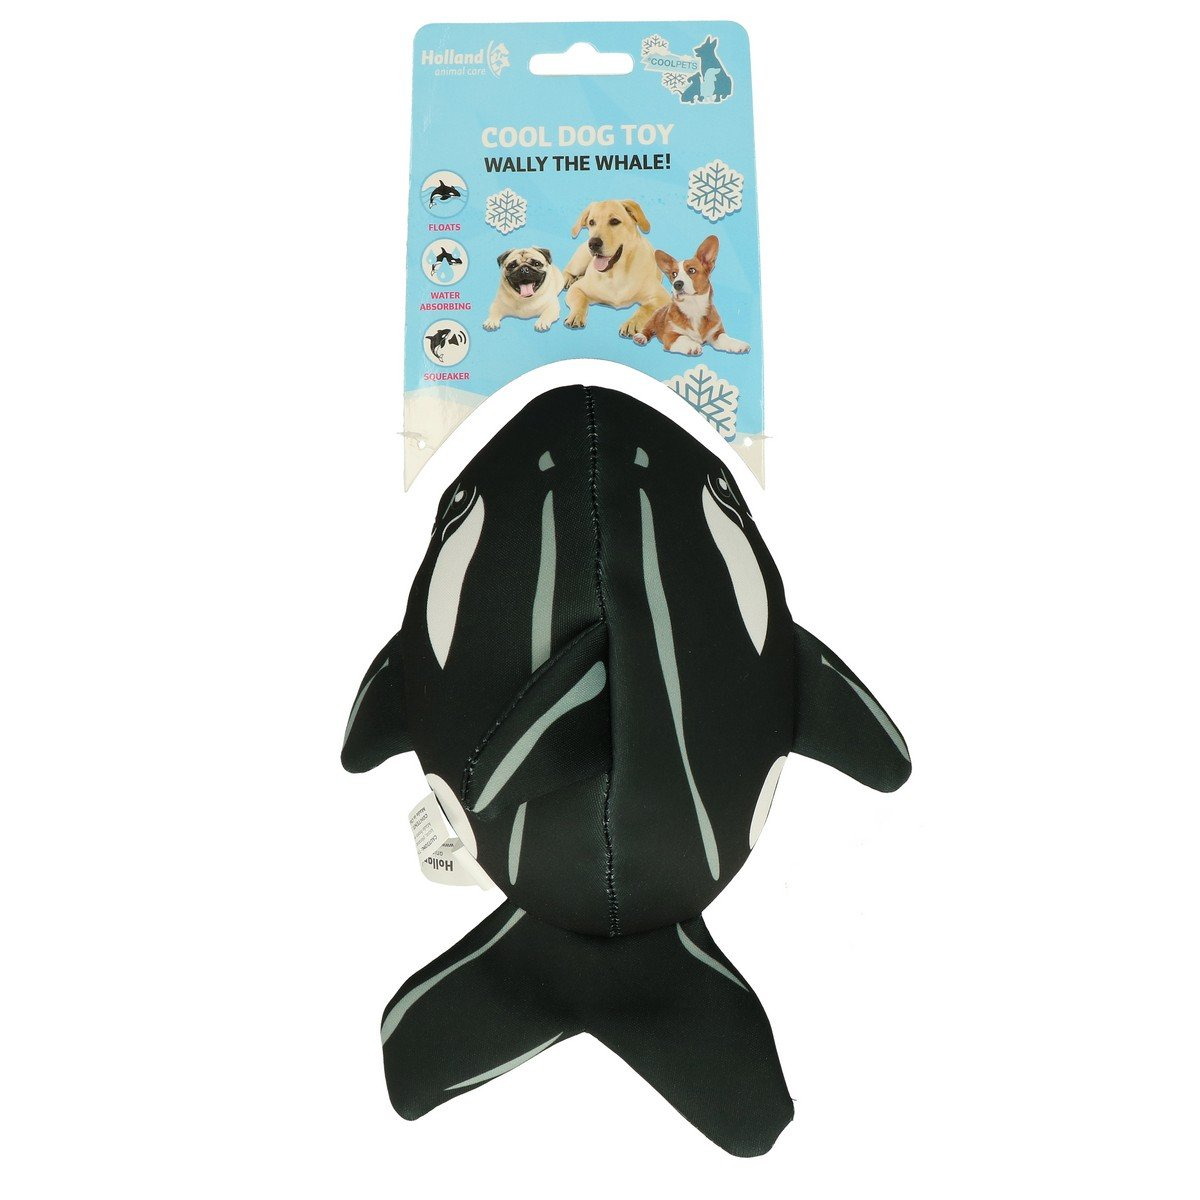 Afbeelding van Coolpets Wally The Whale 1 St